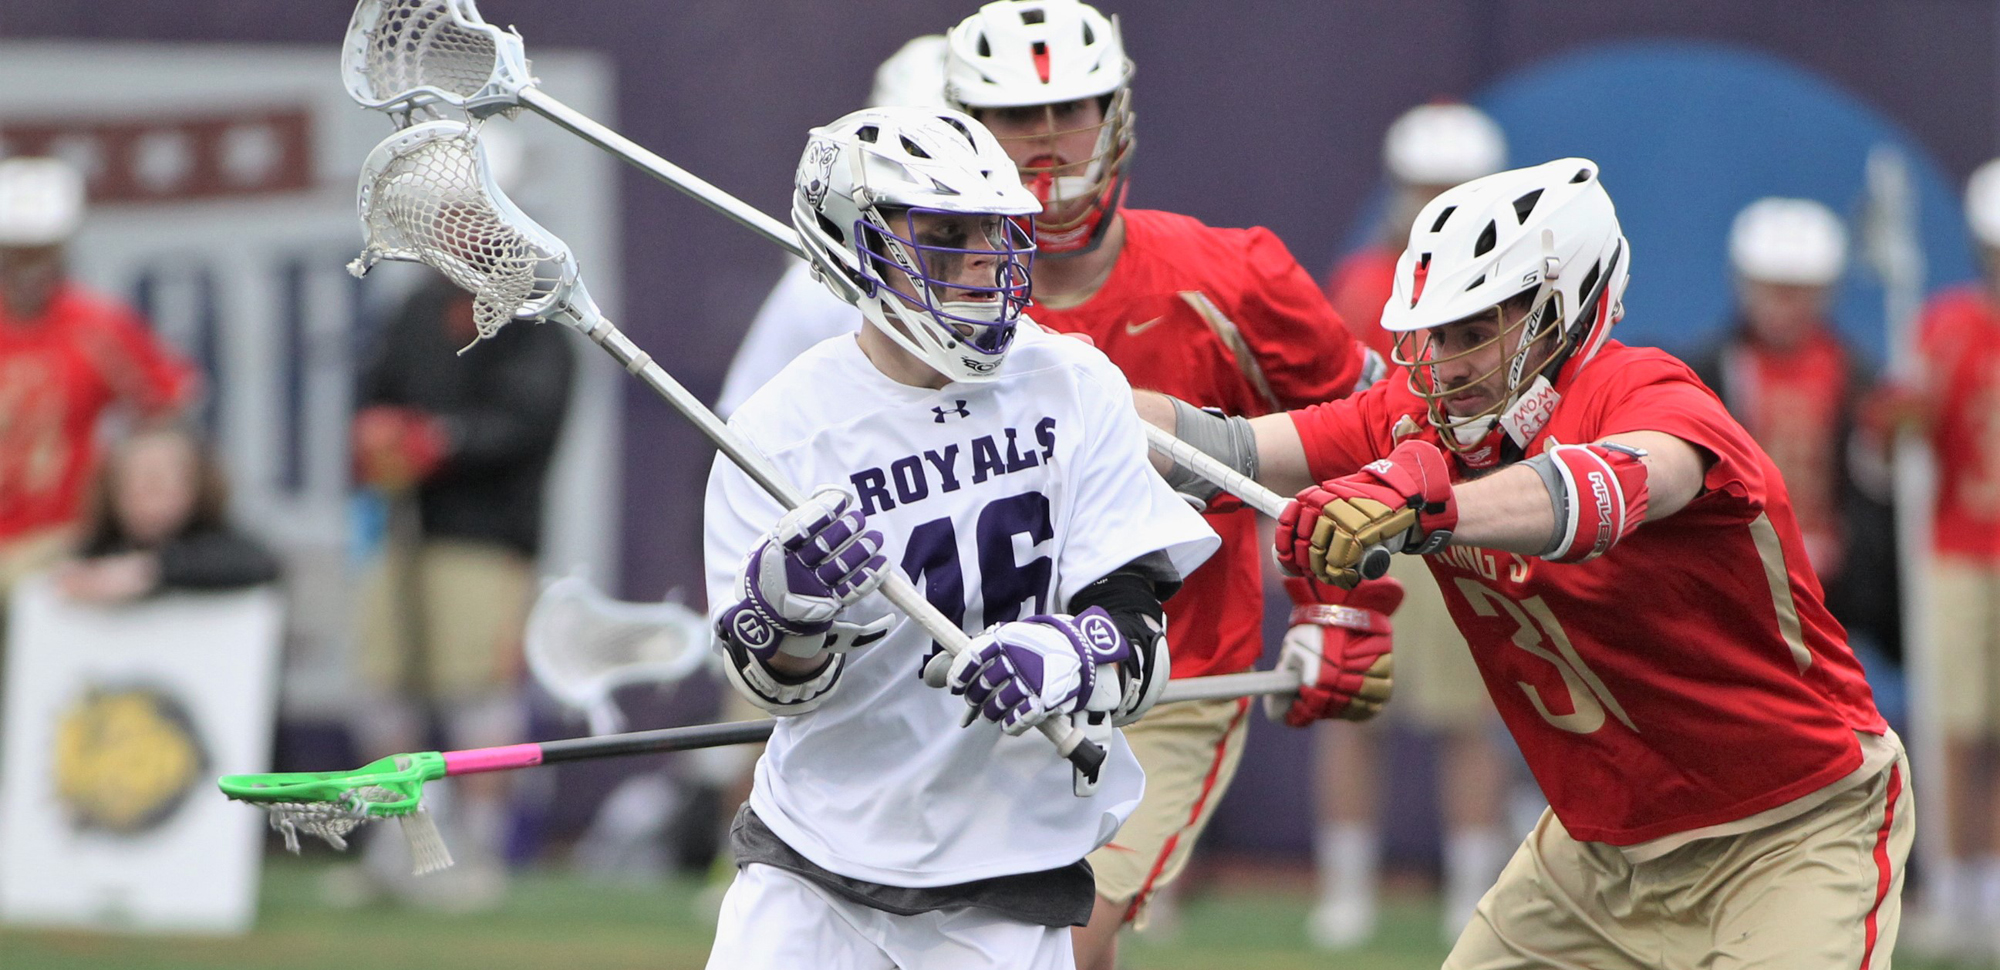 Junior Michael Elefonte scored a career-high five goals in Scranton's 11-8 loss to DeSales on Thursday. © Photo by Timothy R. Dougherty / doubleeaglephotography.com